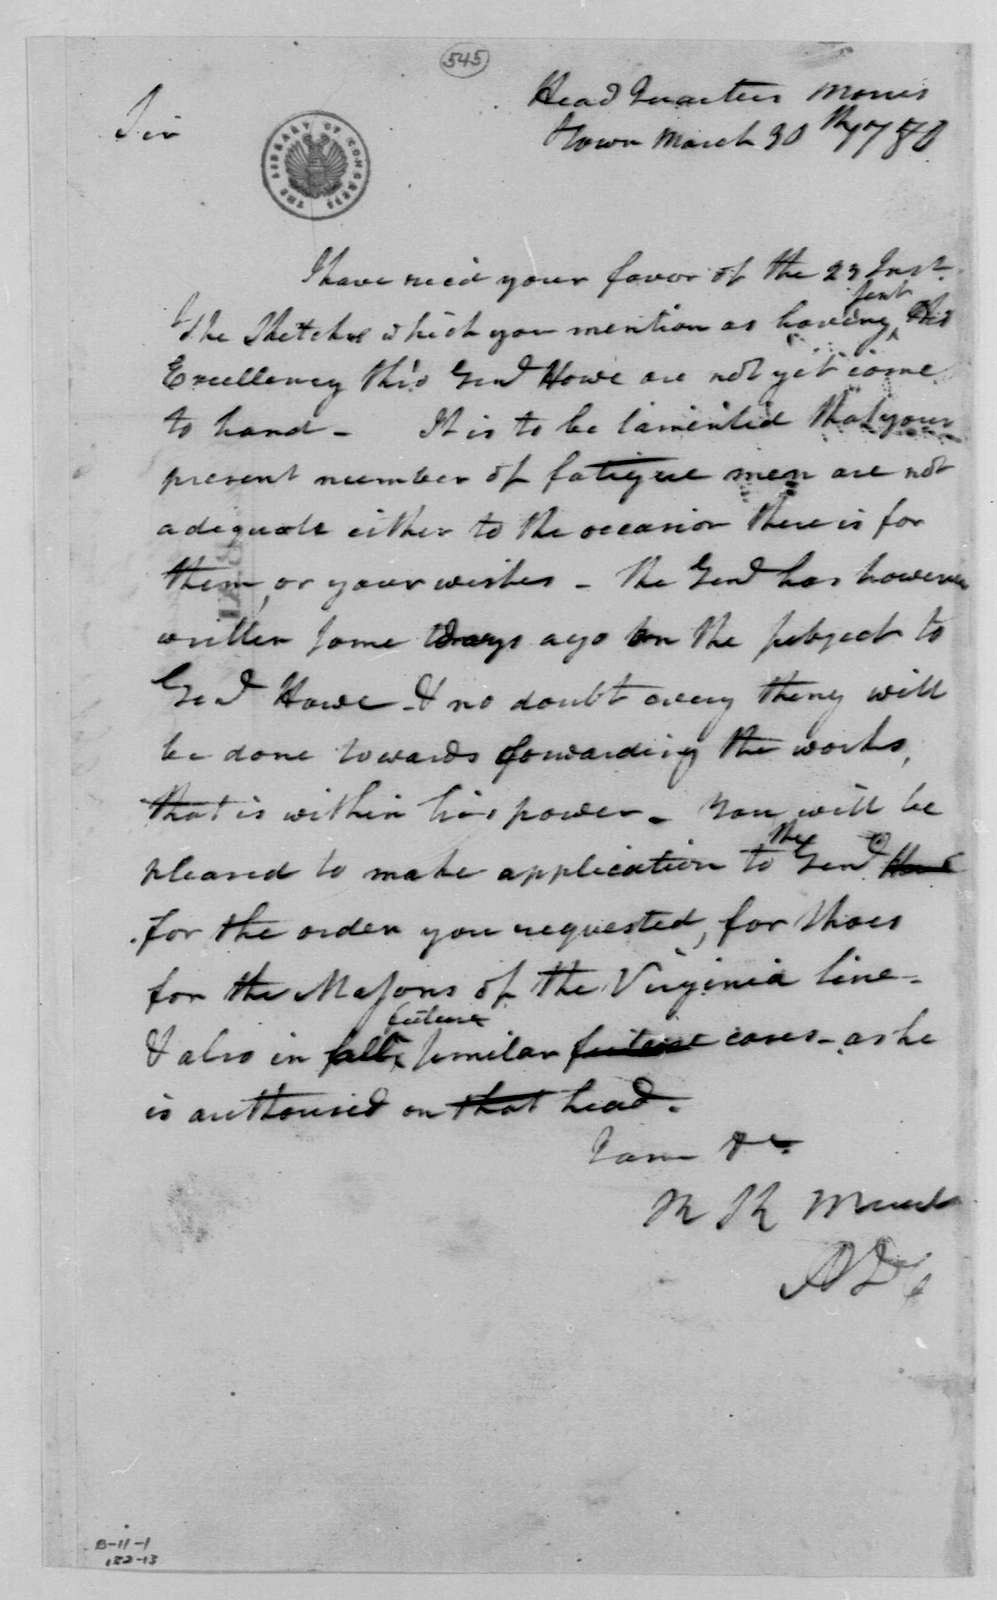 George Washington Papers, Series 4, General Correspondence: Richard K. Meade to Thaddeus Kosciuszko, March 30, 1780